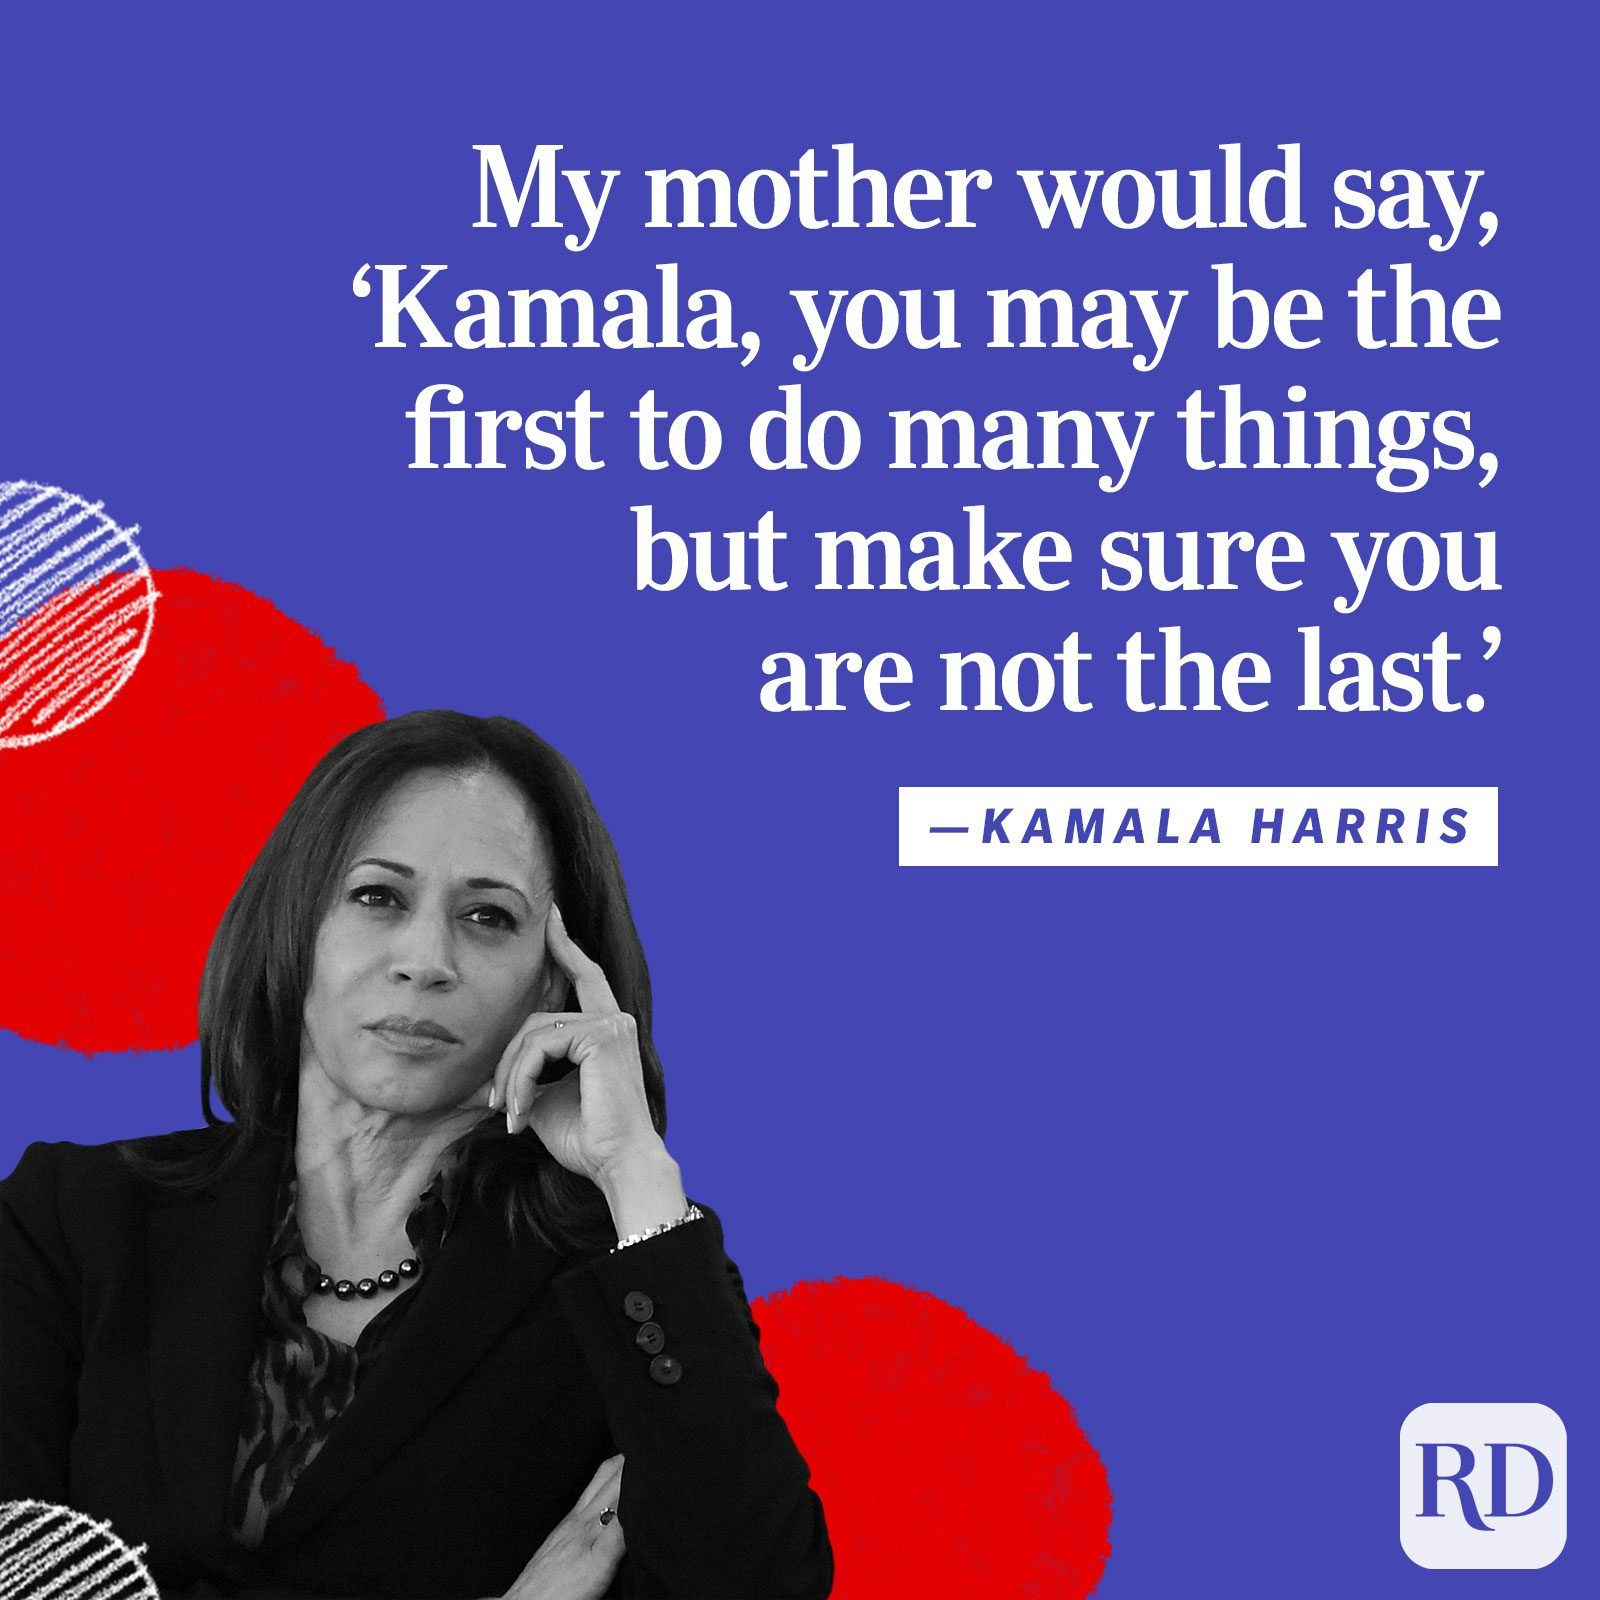 """My mother would say, 'Kamala, you may be the first to do many things, but make sure you are not the last.'"""